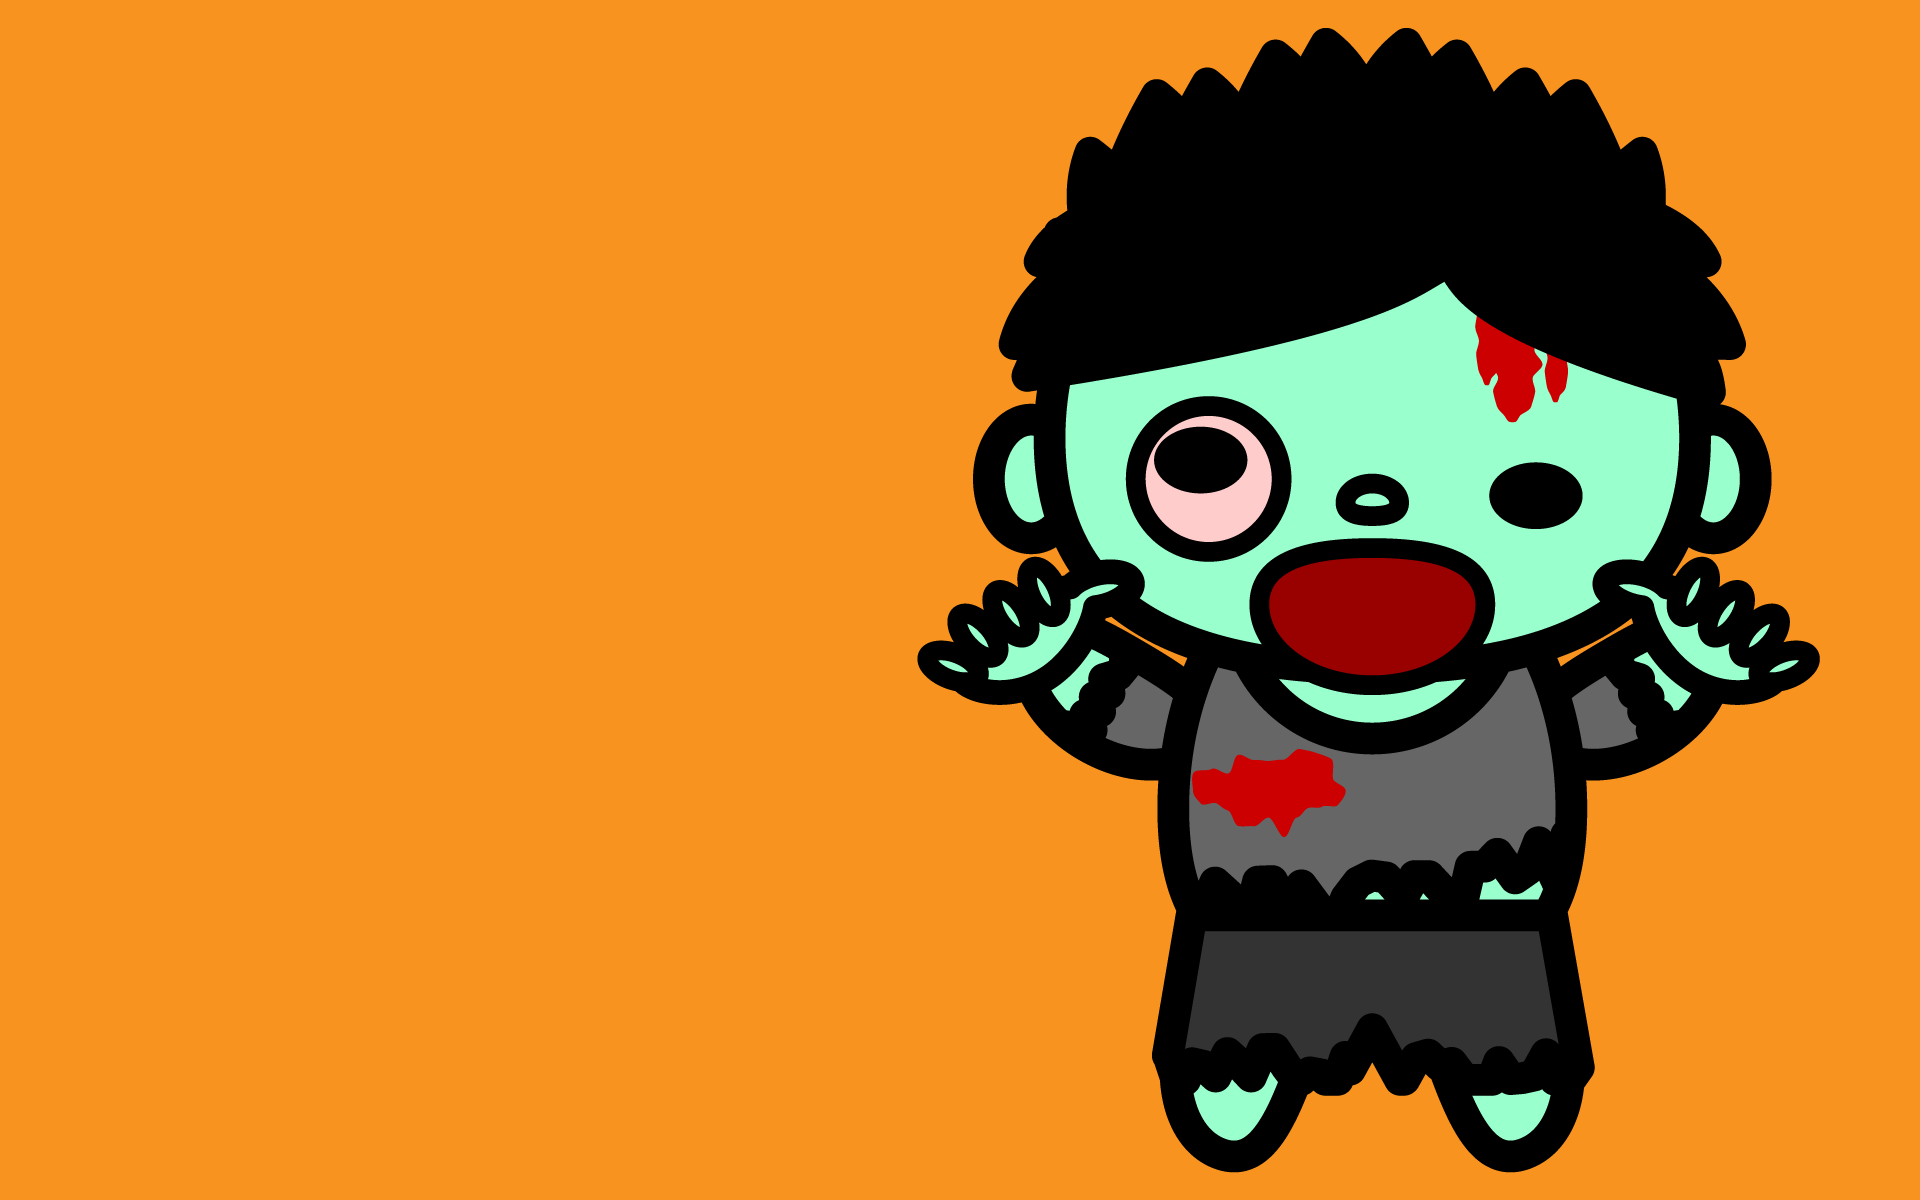 wallpaper2_zombie-man-orange-pc